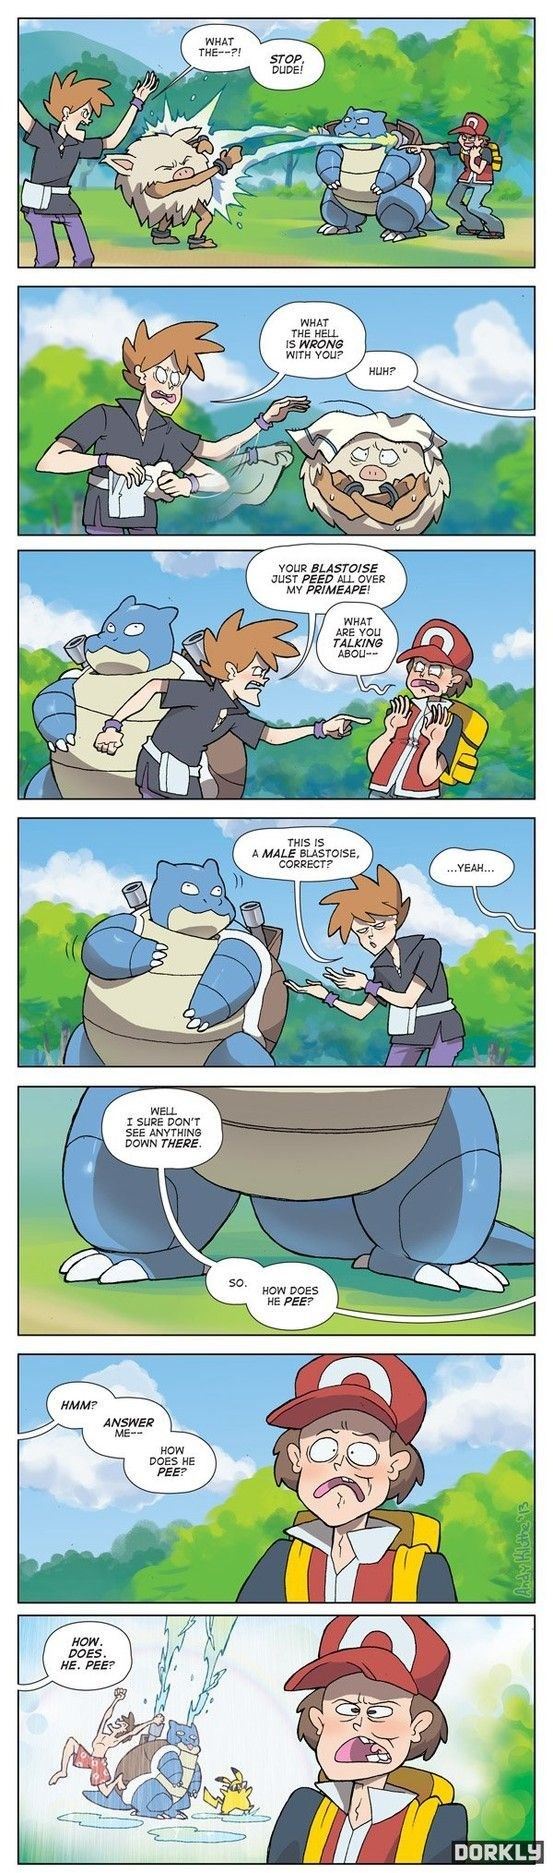 Cartoon - WHAT THEP! STOP DUDE! WHAT THE HELL IS WRONG WITH YOU? HUH? YOUR BLASTOISE JUST PEED ALL OVER MY PRIMEAPE! WHAT ARE YOu TALKING ABOU THIS IS A MALE BLASTOISE, CORRECT? ...YEAH... WELL I SURE DON'T SEE ANYTHING DOWN THERE SO HOW DOES нмM? ANSWER ME-- нOW DOES HE PEE? нOW. DOES HE. PEE? DORKLY